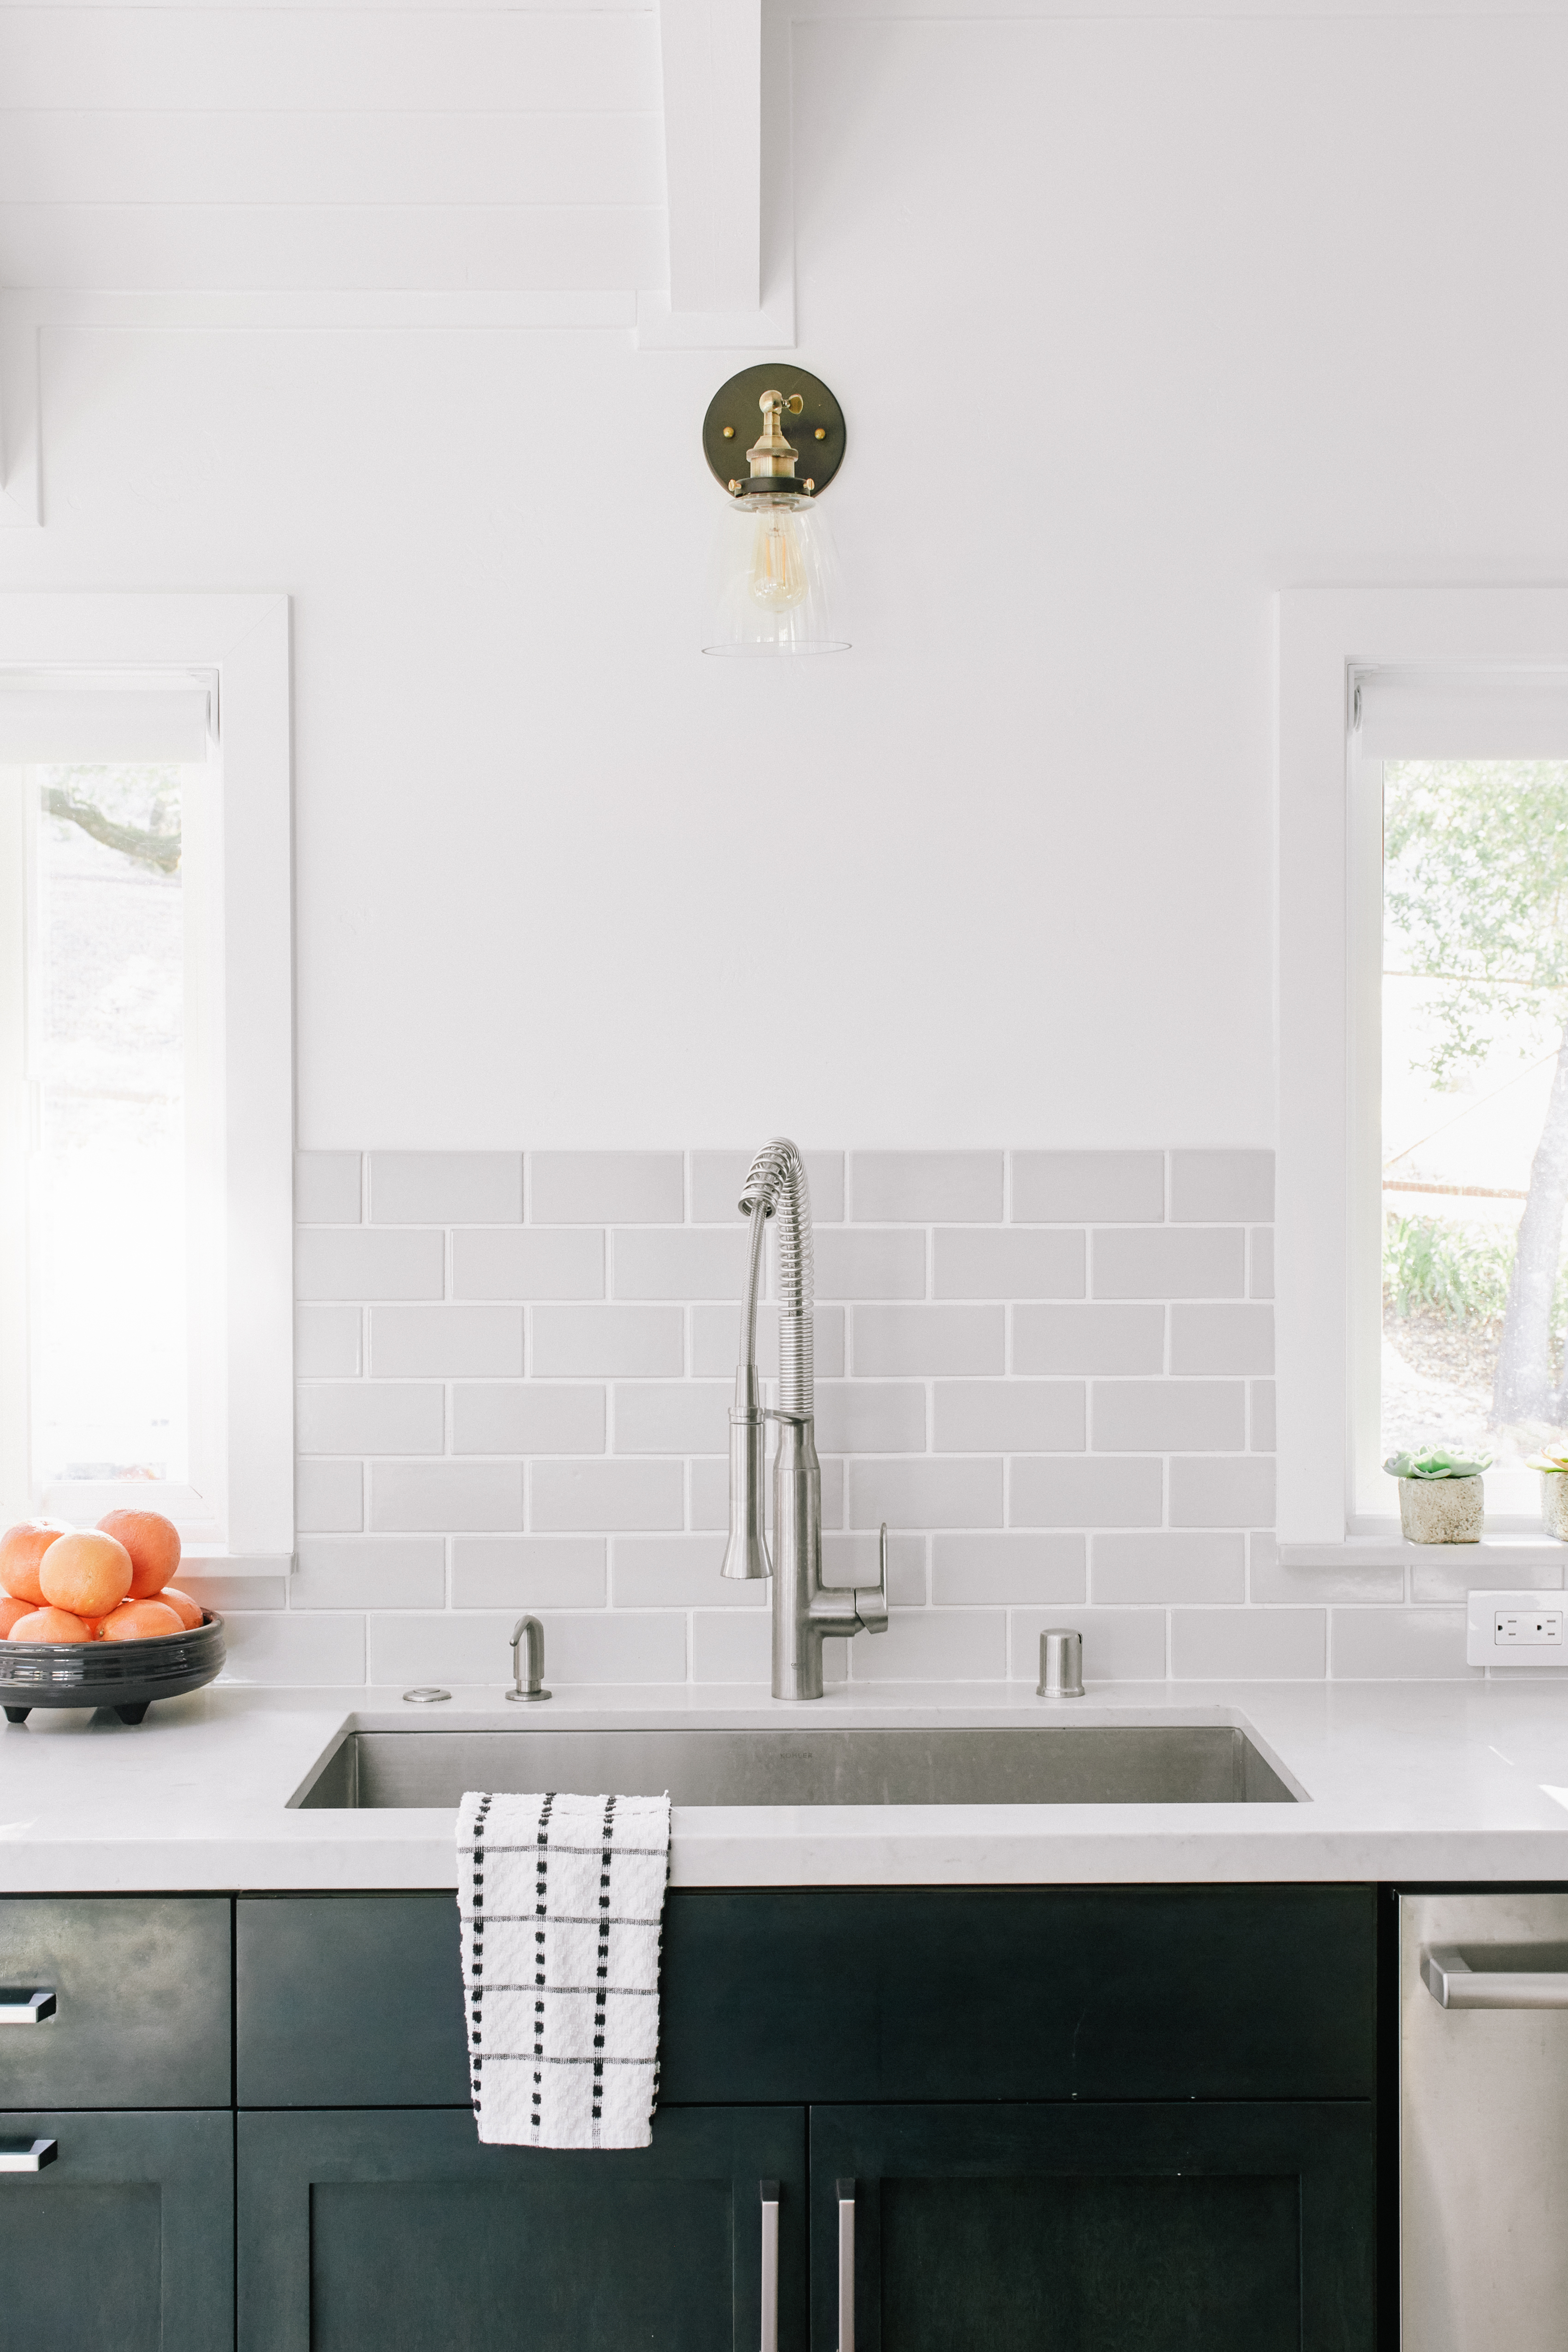 How to Choose the Right Grout Size For Your Tile | Fireclay Tile  X Tile Backsplash Kitchen Corner on 6x6 kitchen island, 12x12 kitchen tile backsplash, 6x6 kitchen tile flooring, 6x6 ceramic tile, 6x6 bathroom tiles, 6x6 pool tile, tropical kitchen tile backsplash,